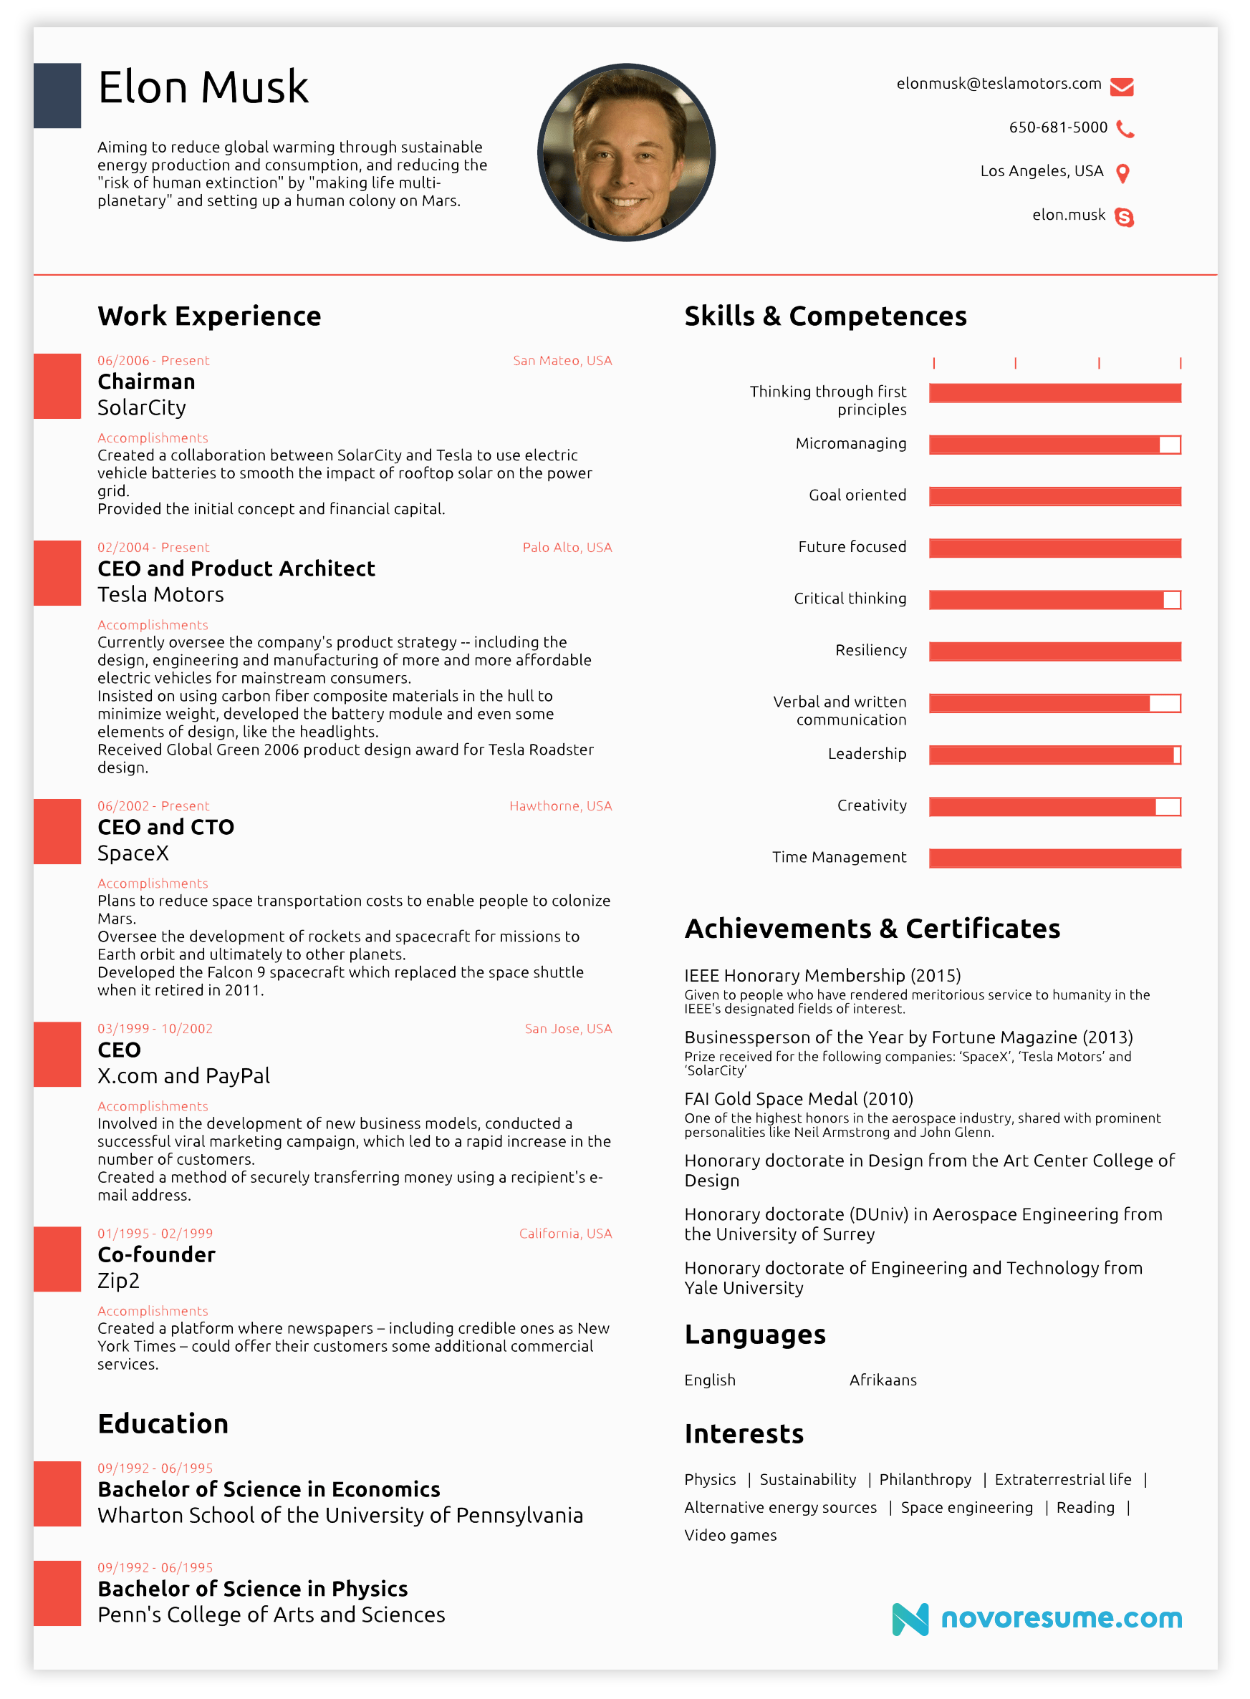 elon musk resume resume pinterest elon musk resume ideas and